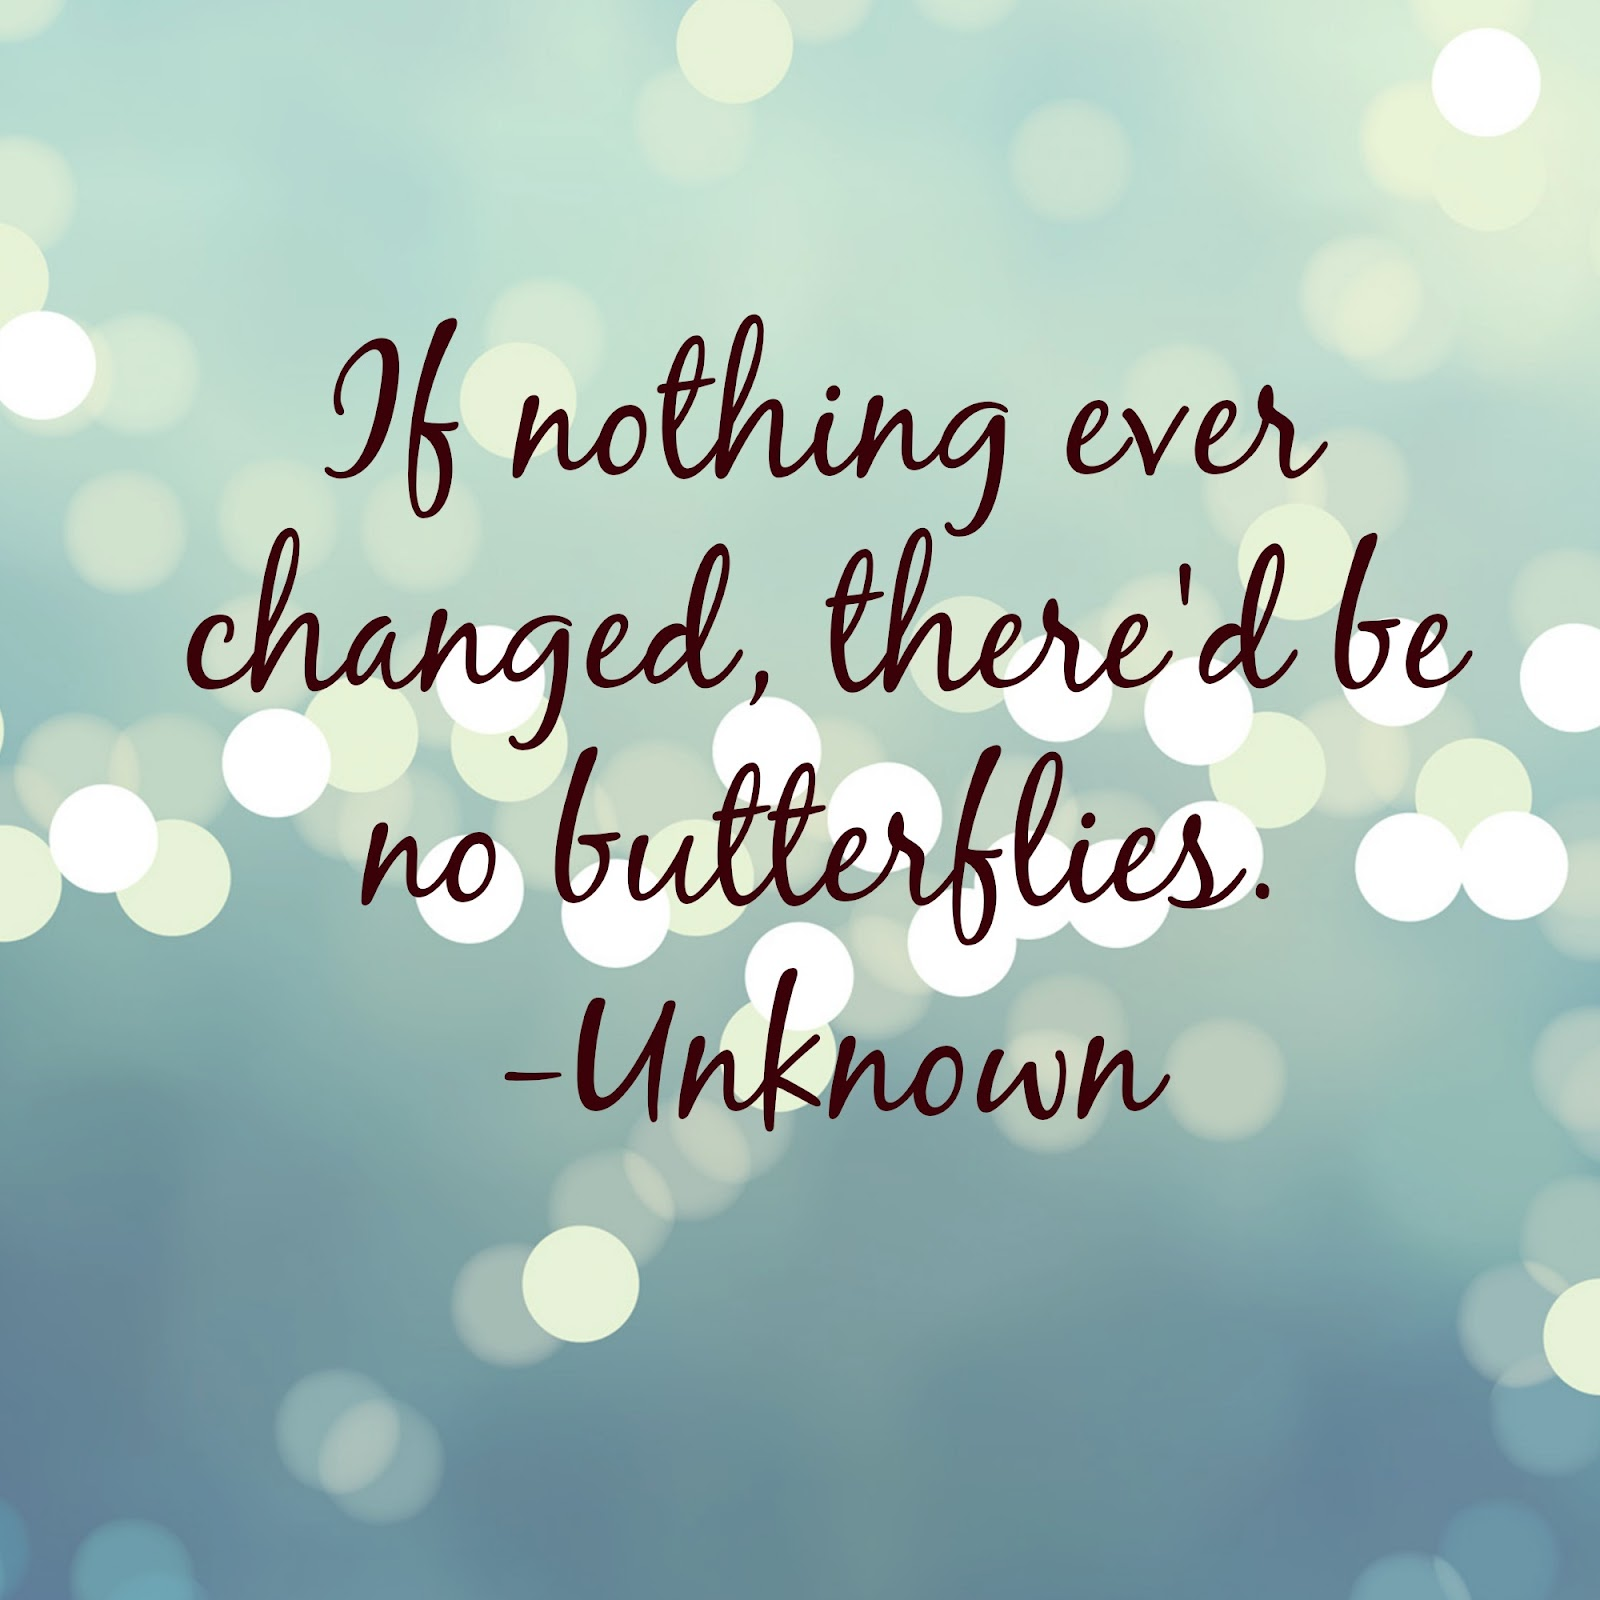 Quote of the Day :: If nothing ever changed, there'd be no butterflies